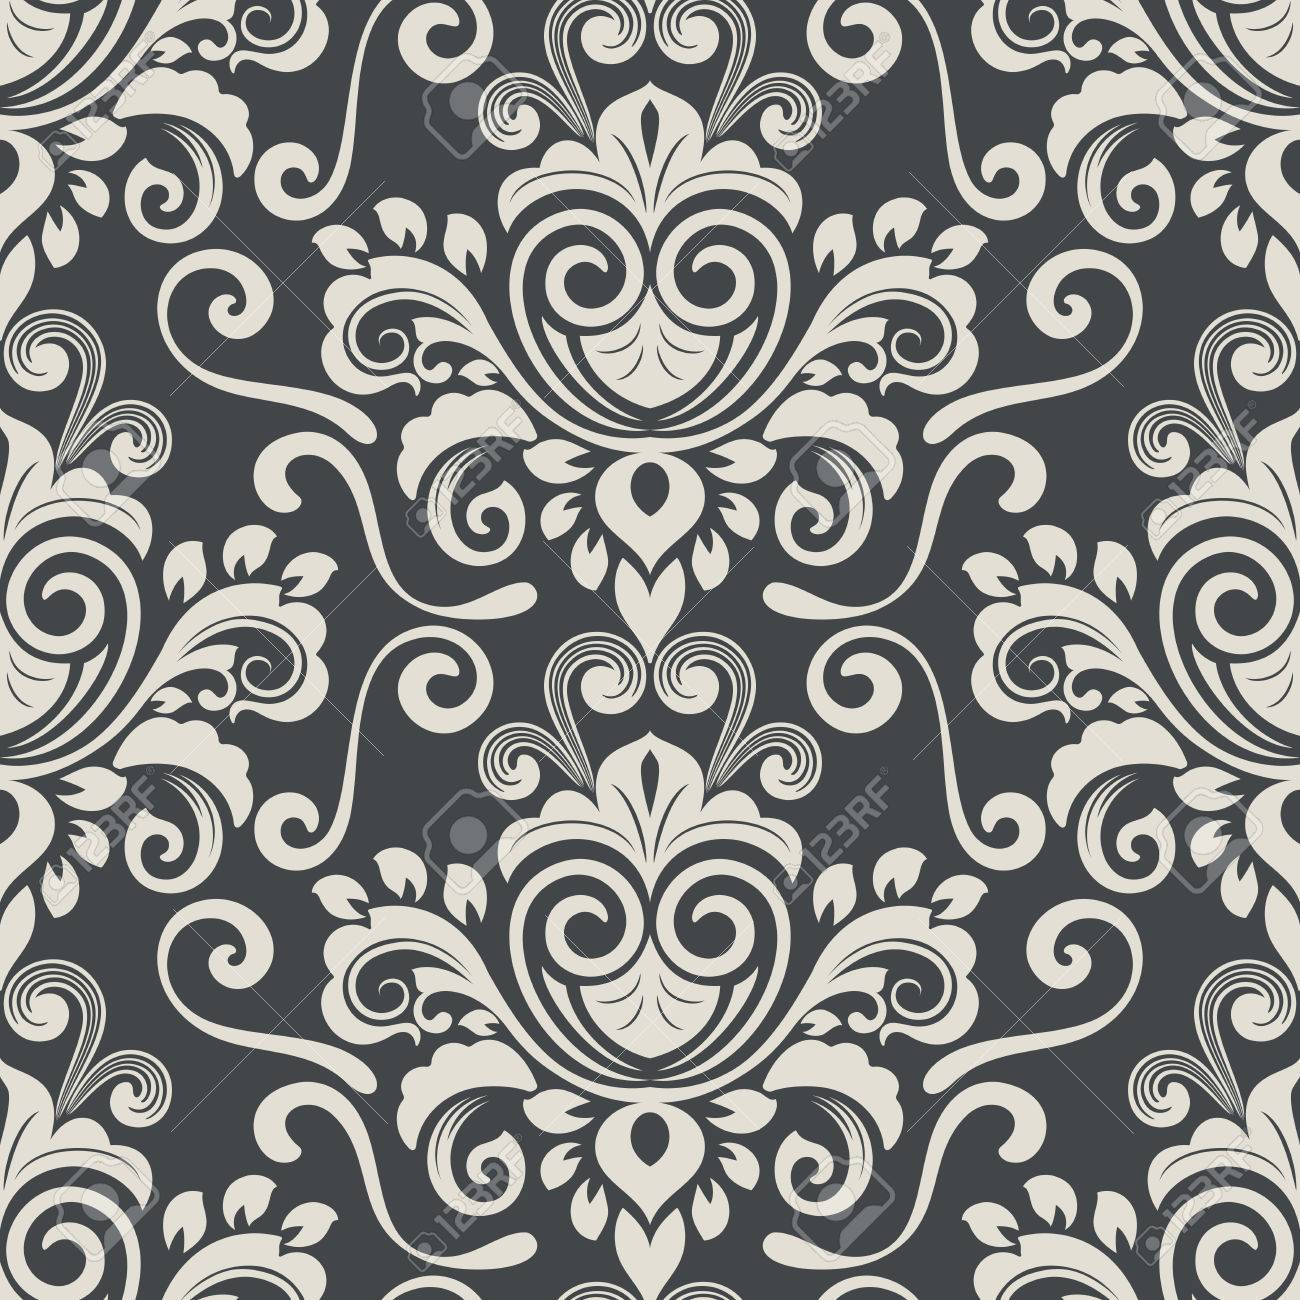 Dark black and white vintage wallpaper pattern vector illustration stock vector 78450565